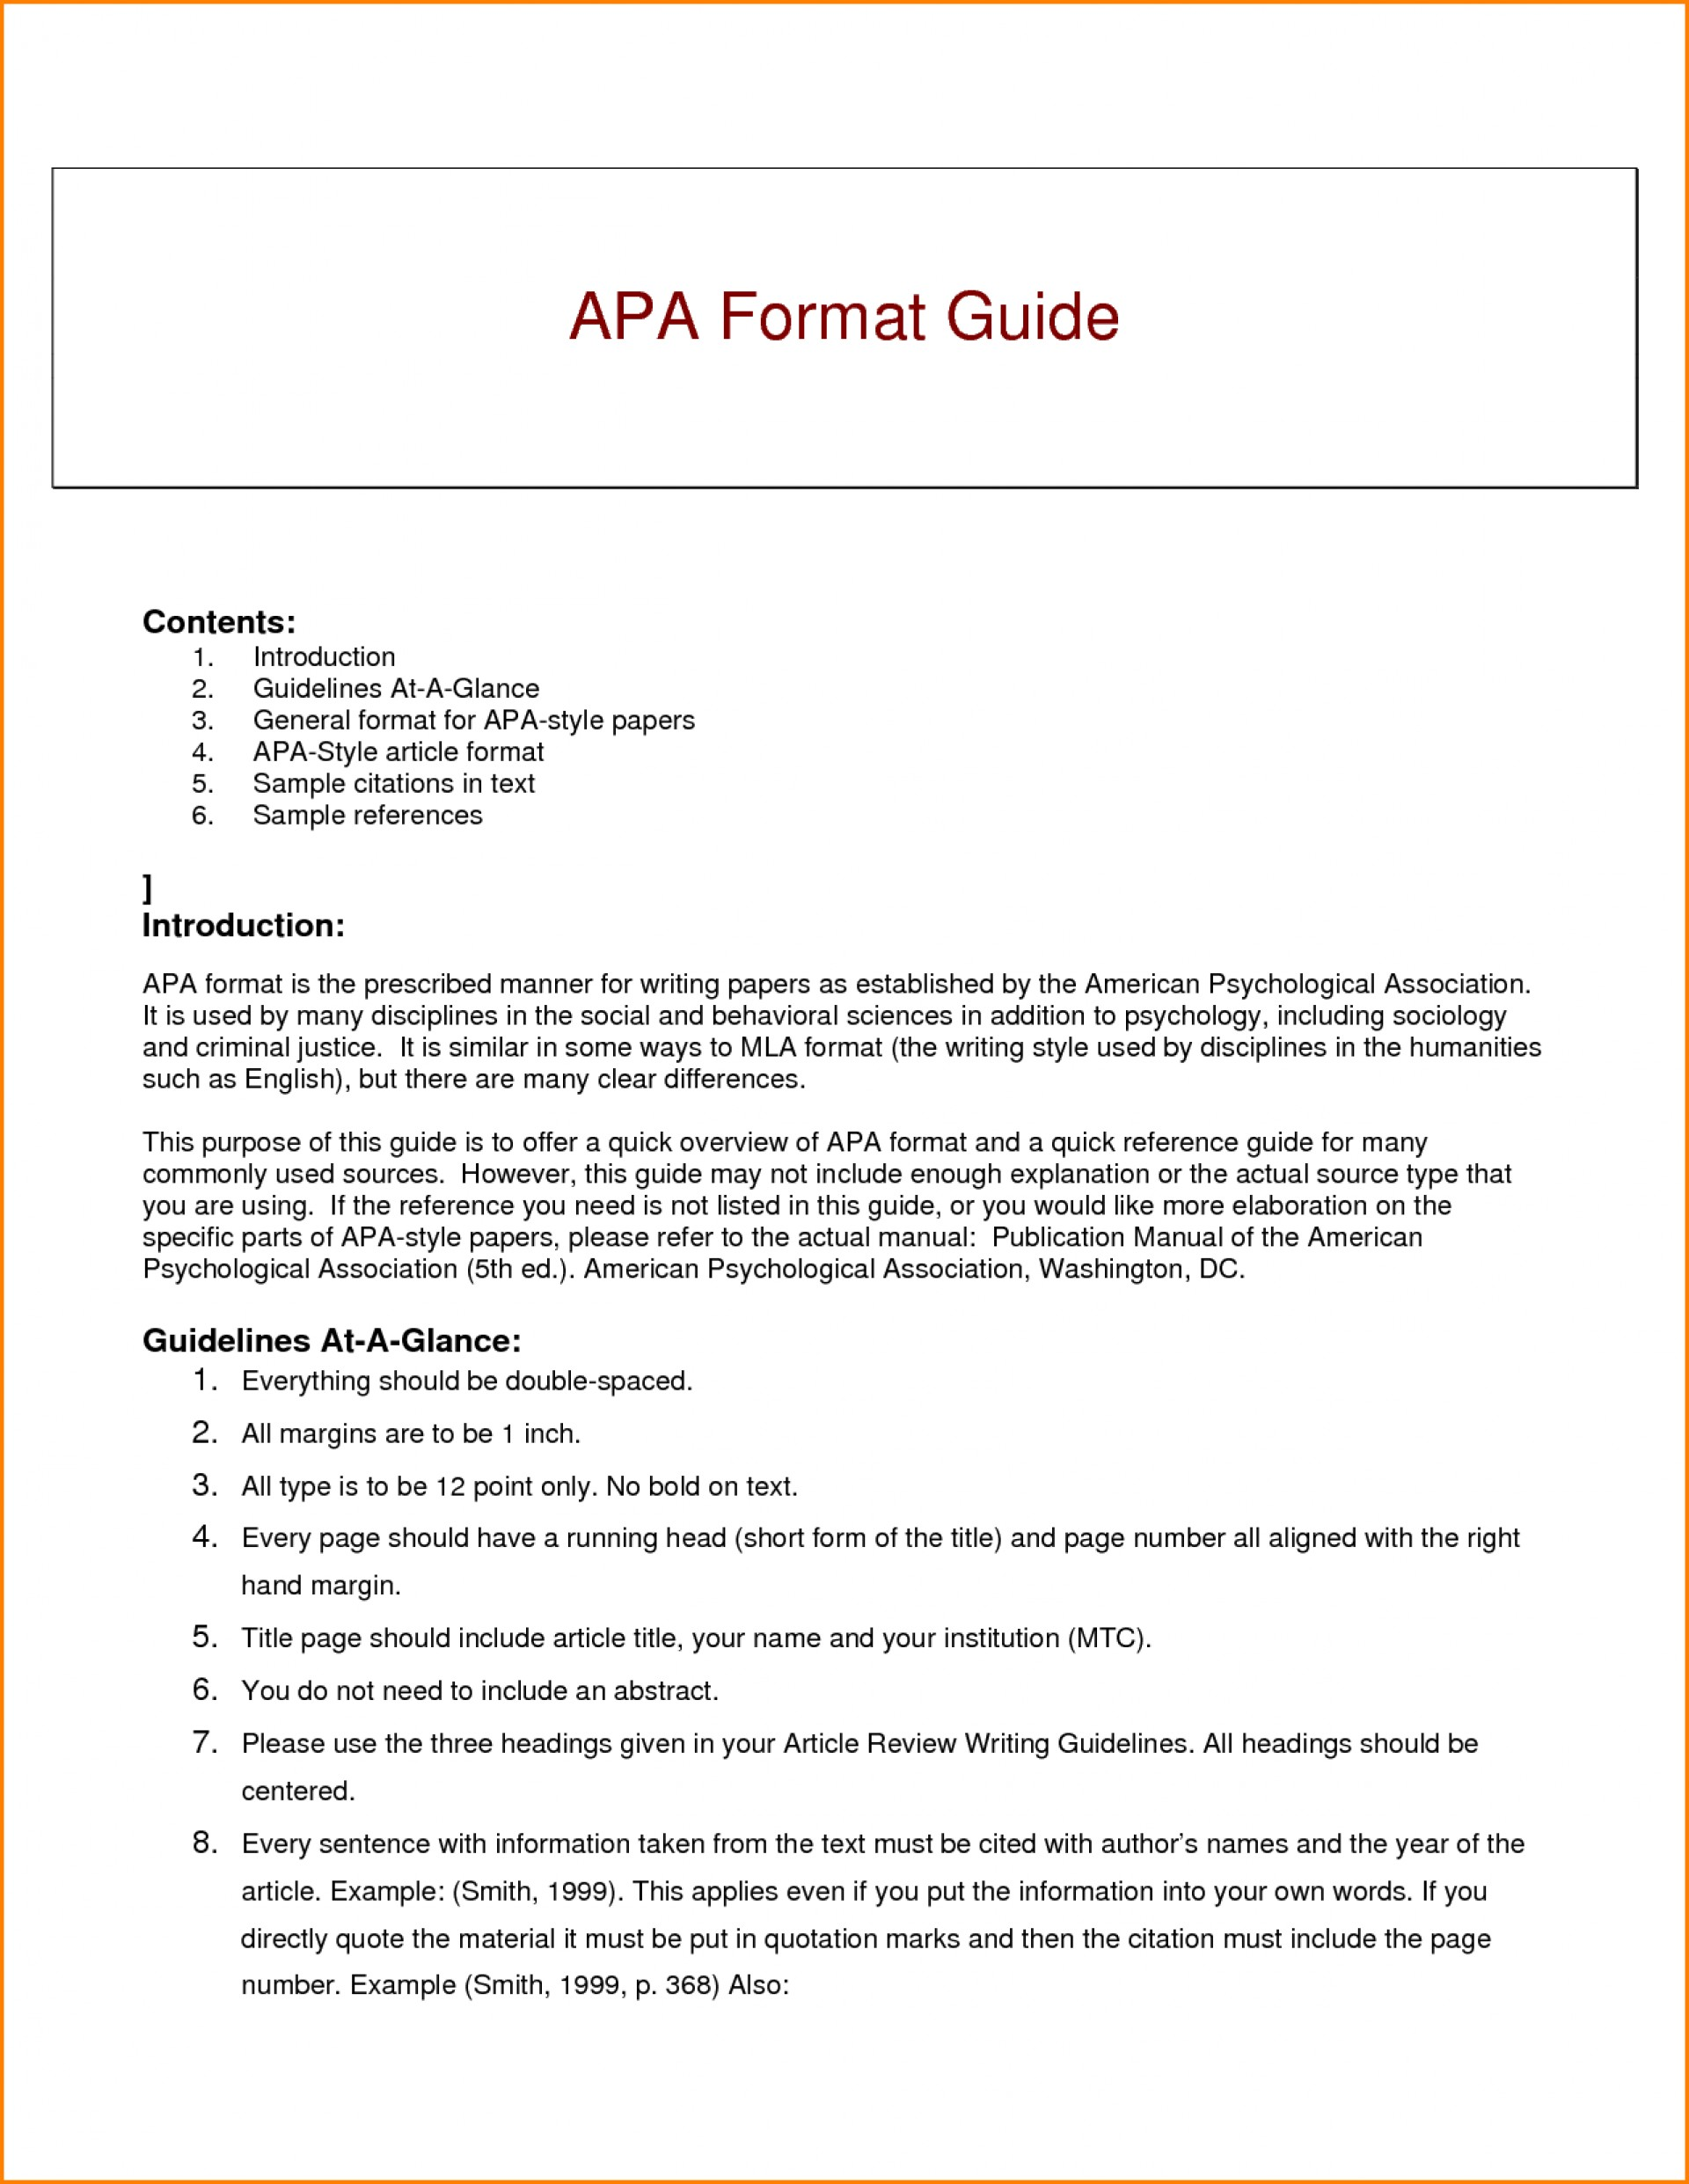 007 Research Paper Citing Papers Apa Breathtaking Sources In Paragraph Citation 1920